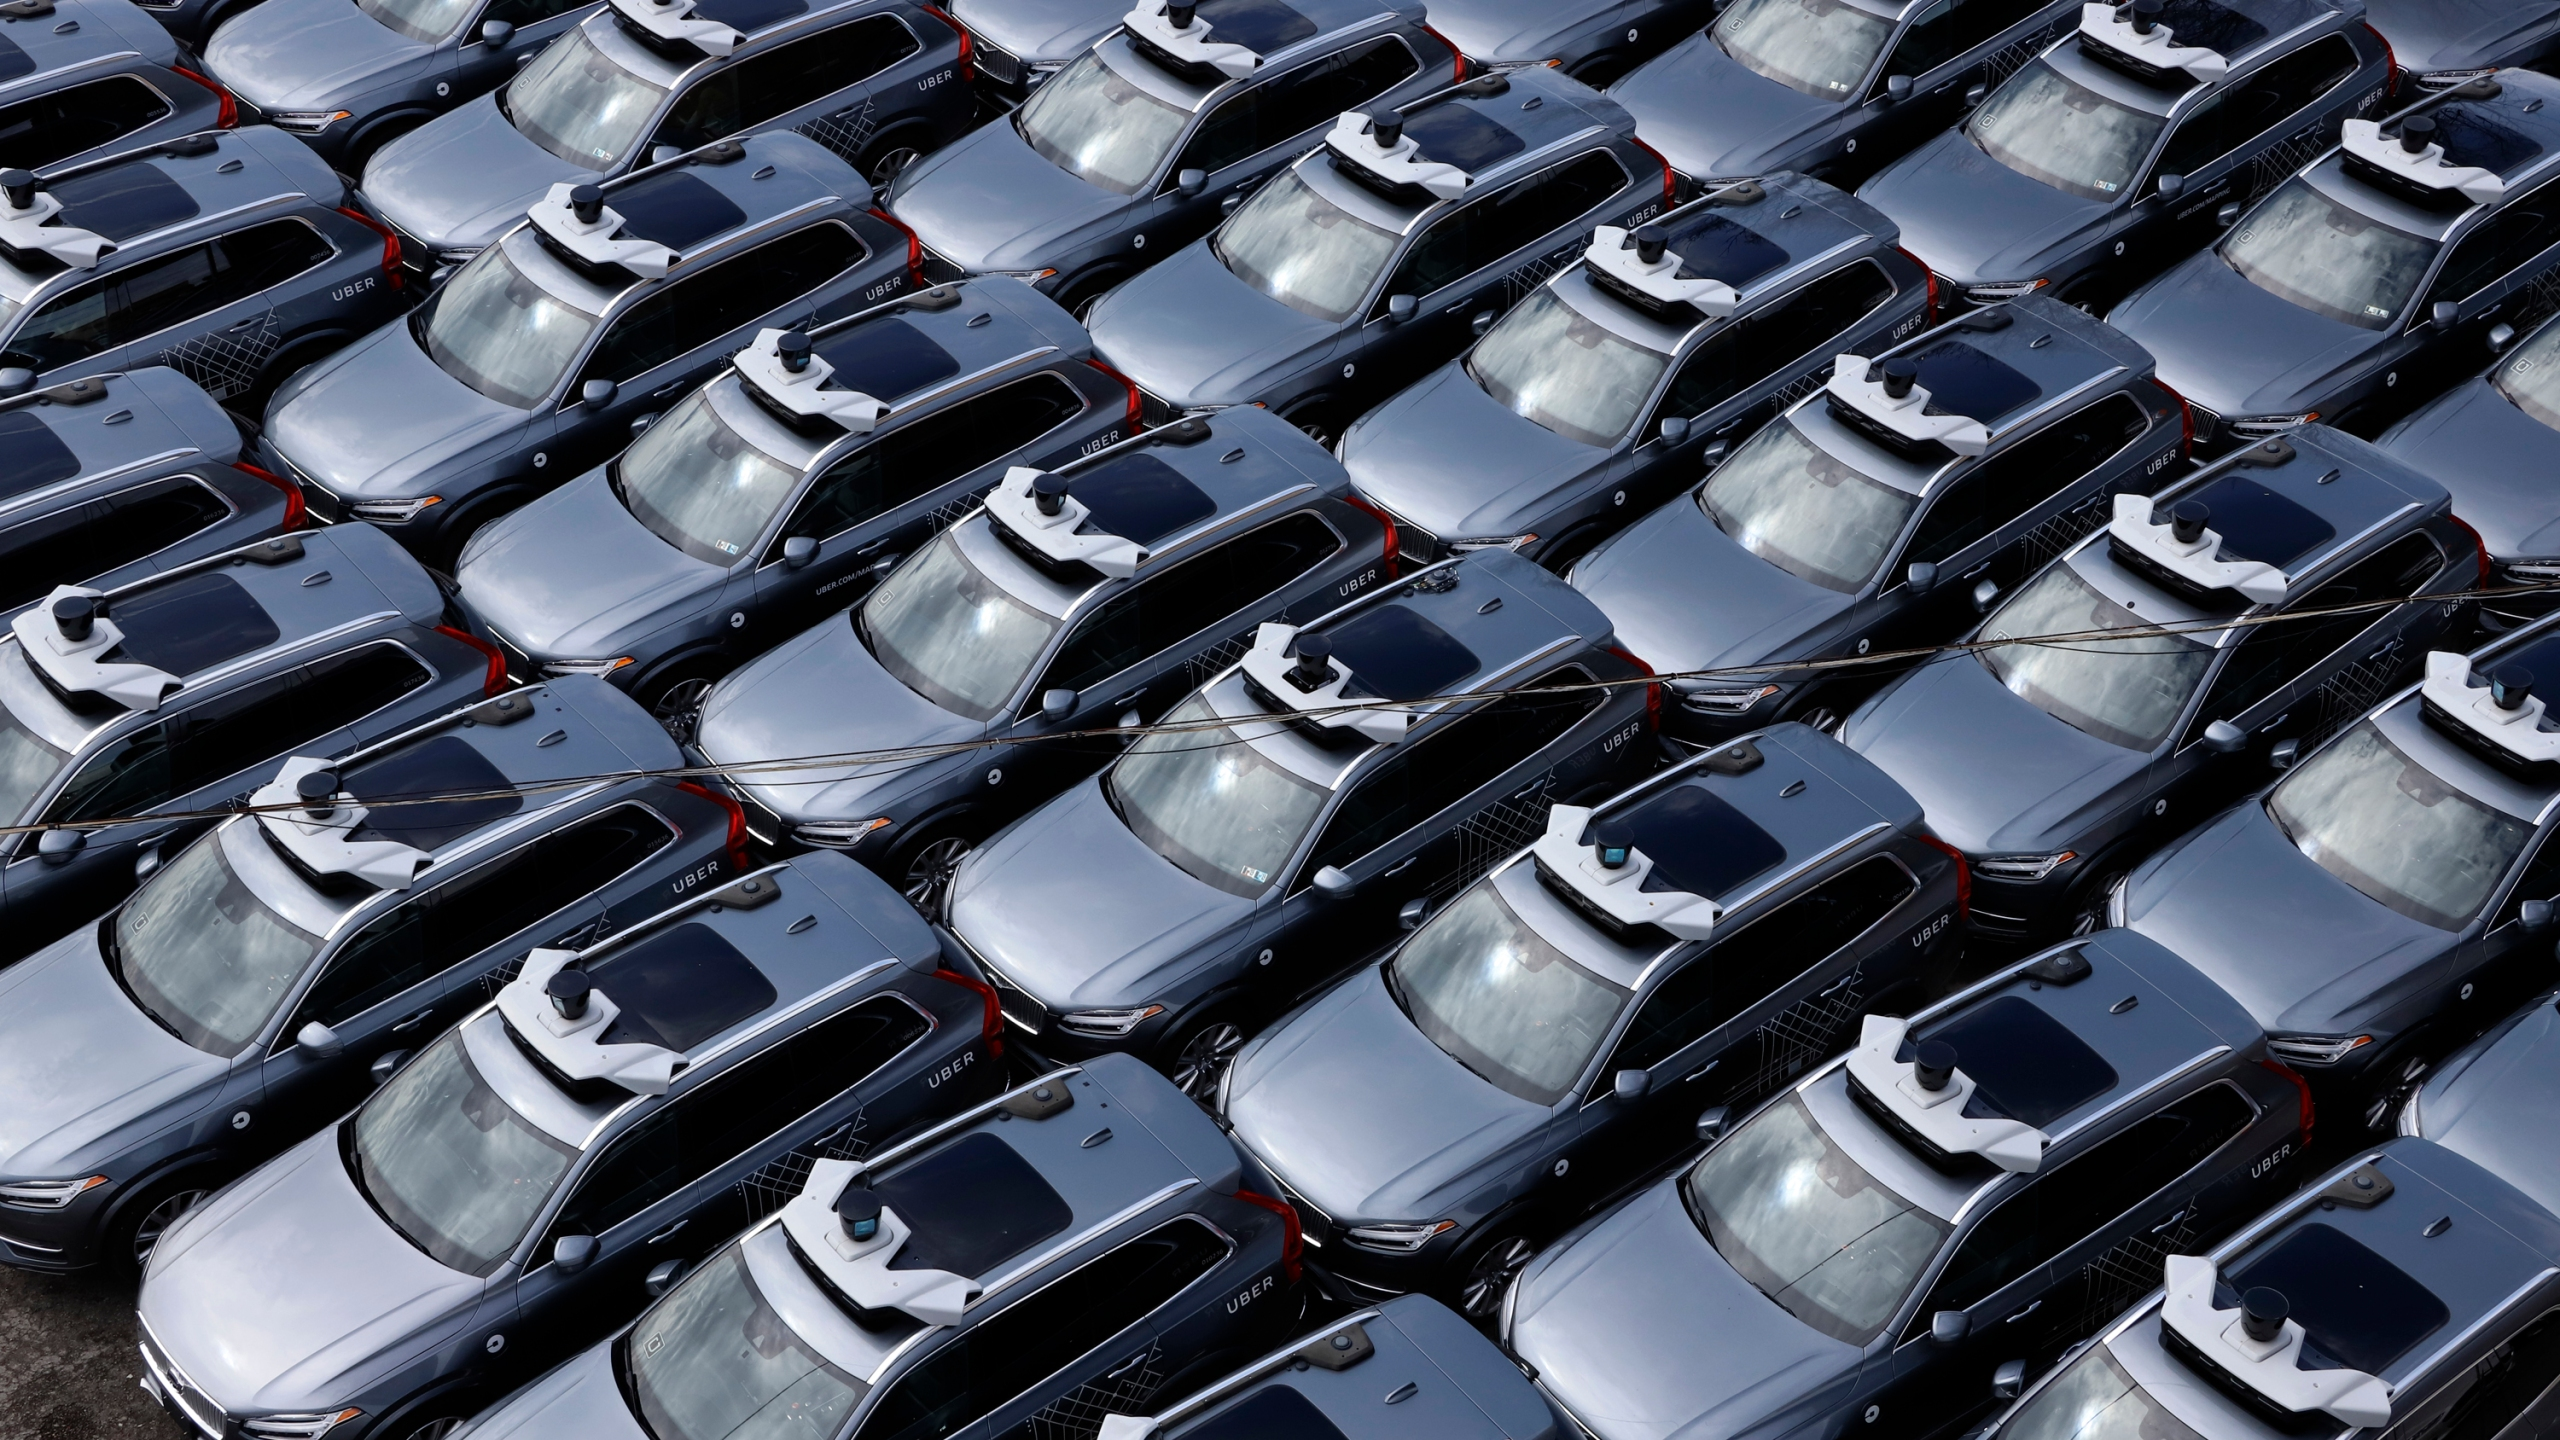 A parking lot full of Uber self-driving Volvos is seen in Pittsburgh on March 20, 2020. (Gene J. Puskar / Associated Press)